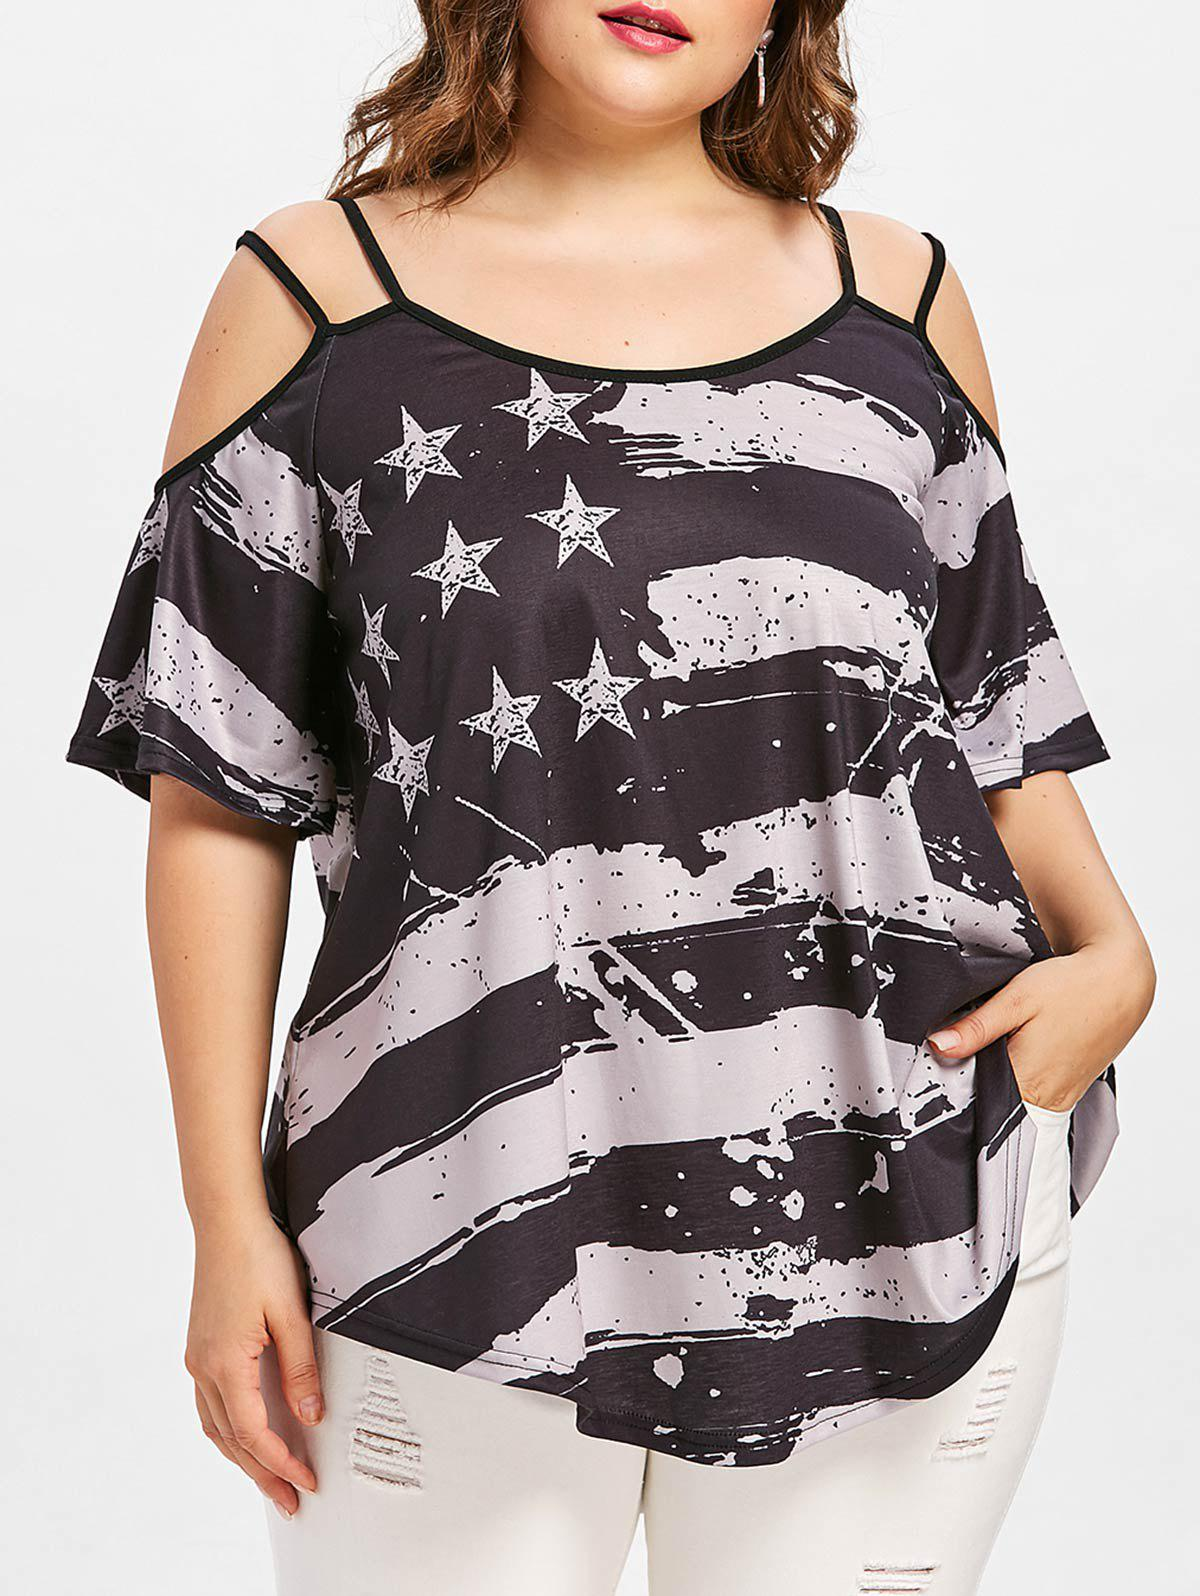 Cold Shoulder Plus Size American Flag T-shirt чехол для samsung galaxy s8 sm g950 clear cover золотистый